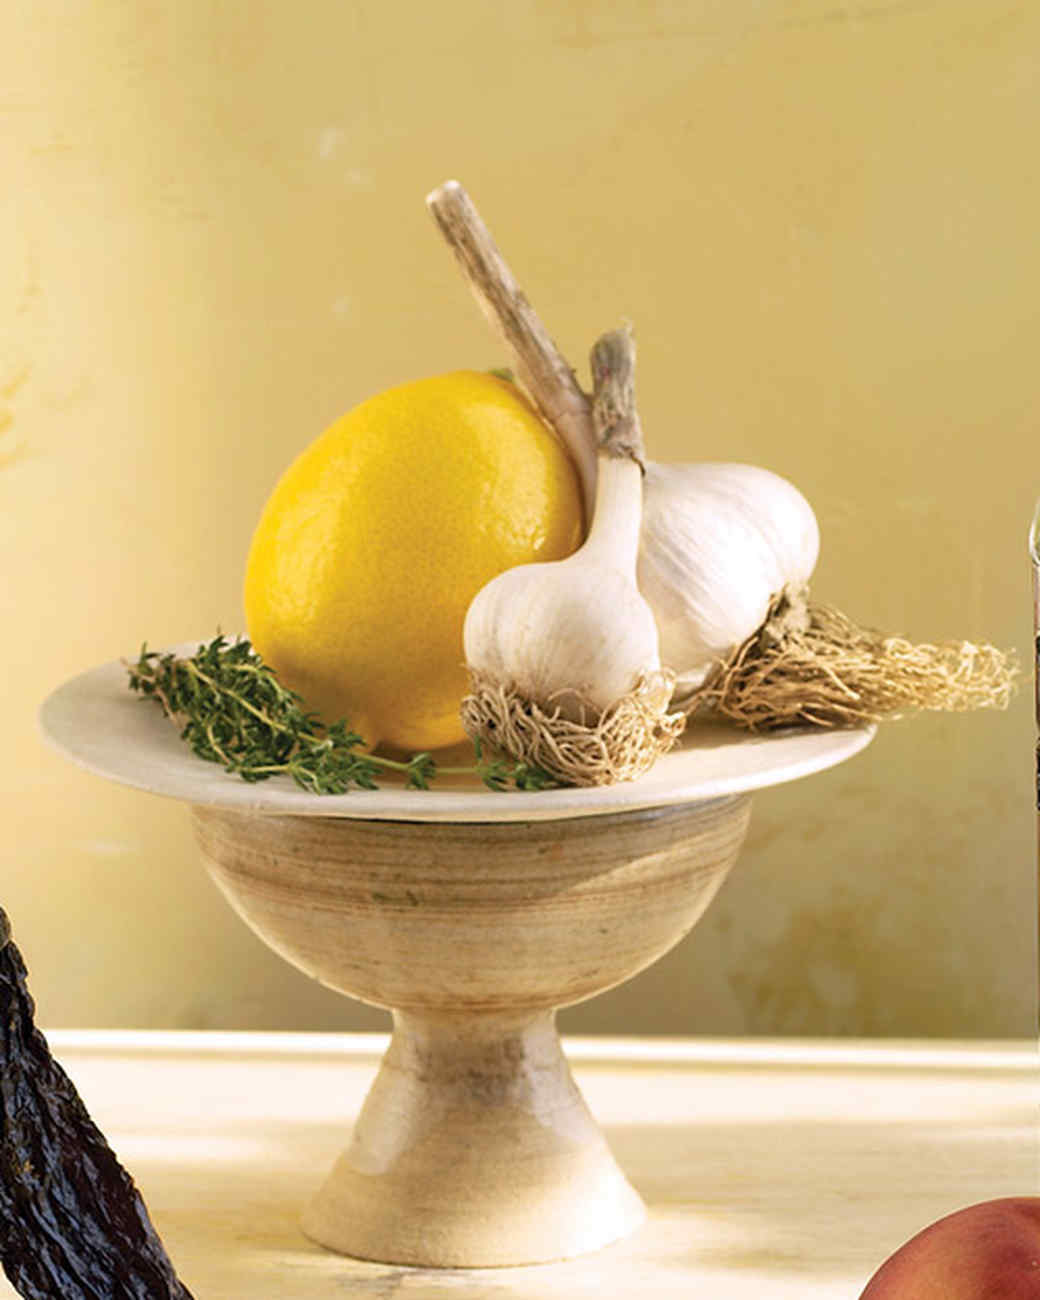 mld04320_0609_garlic_lemon.jpg